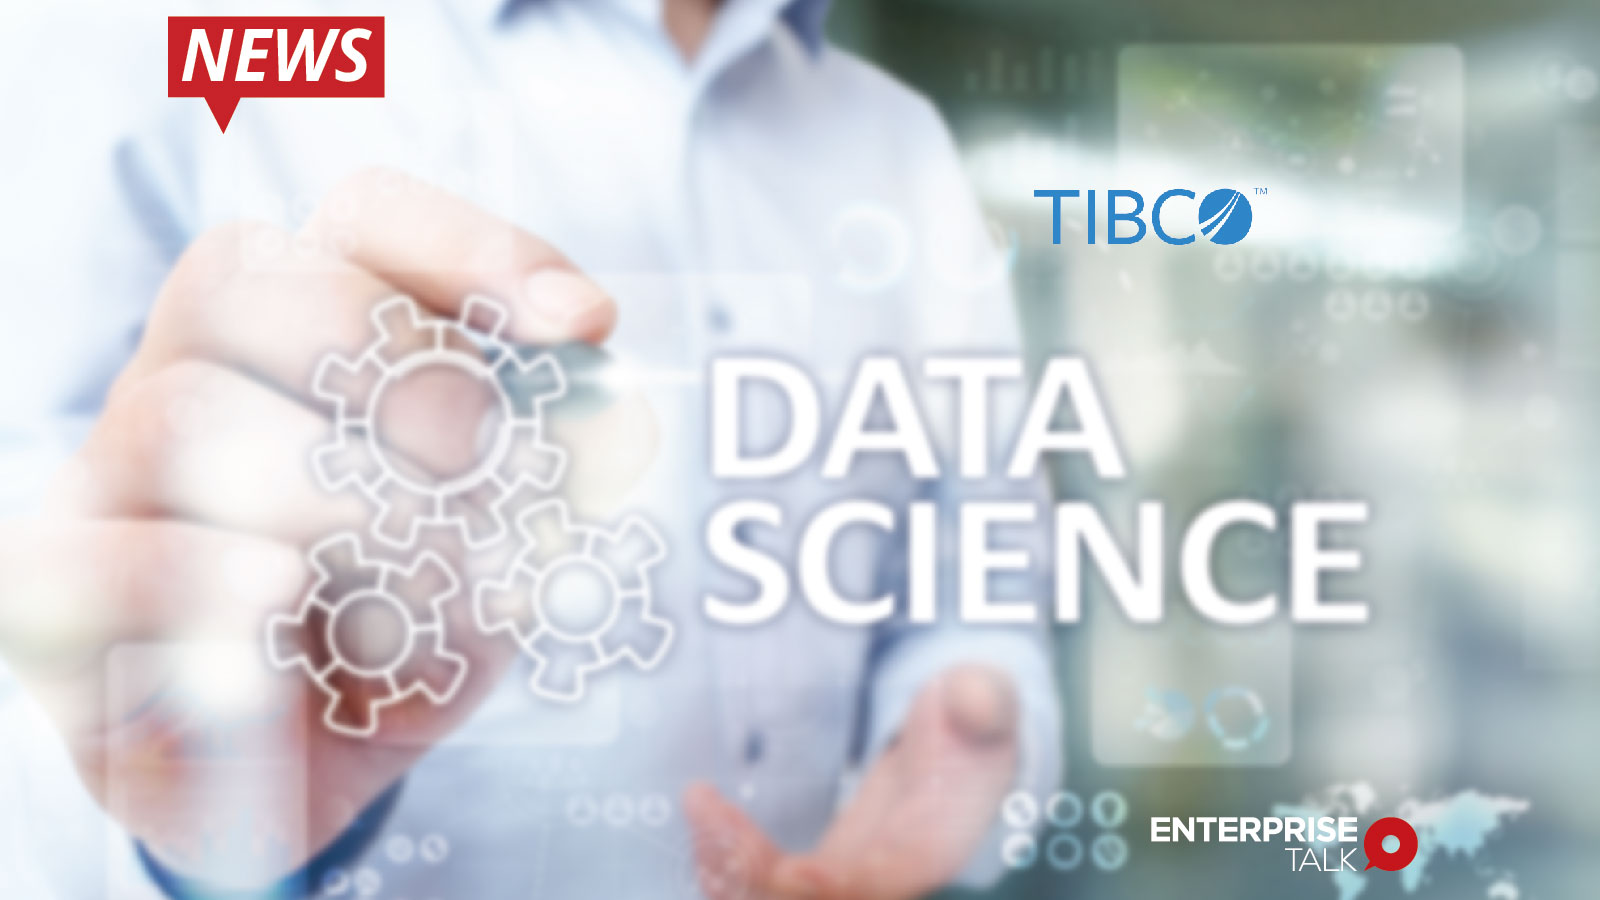 TIBCO, Gartner's 2020 Magic Quadrant, Data Science, Machine Learning, complex data-driven challenges, artificial intelligence, AI, ML